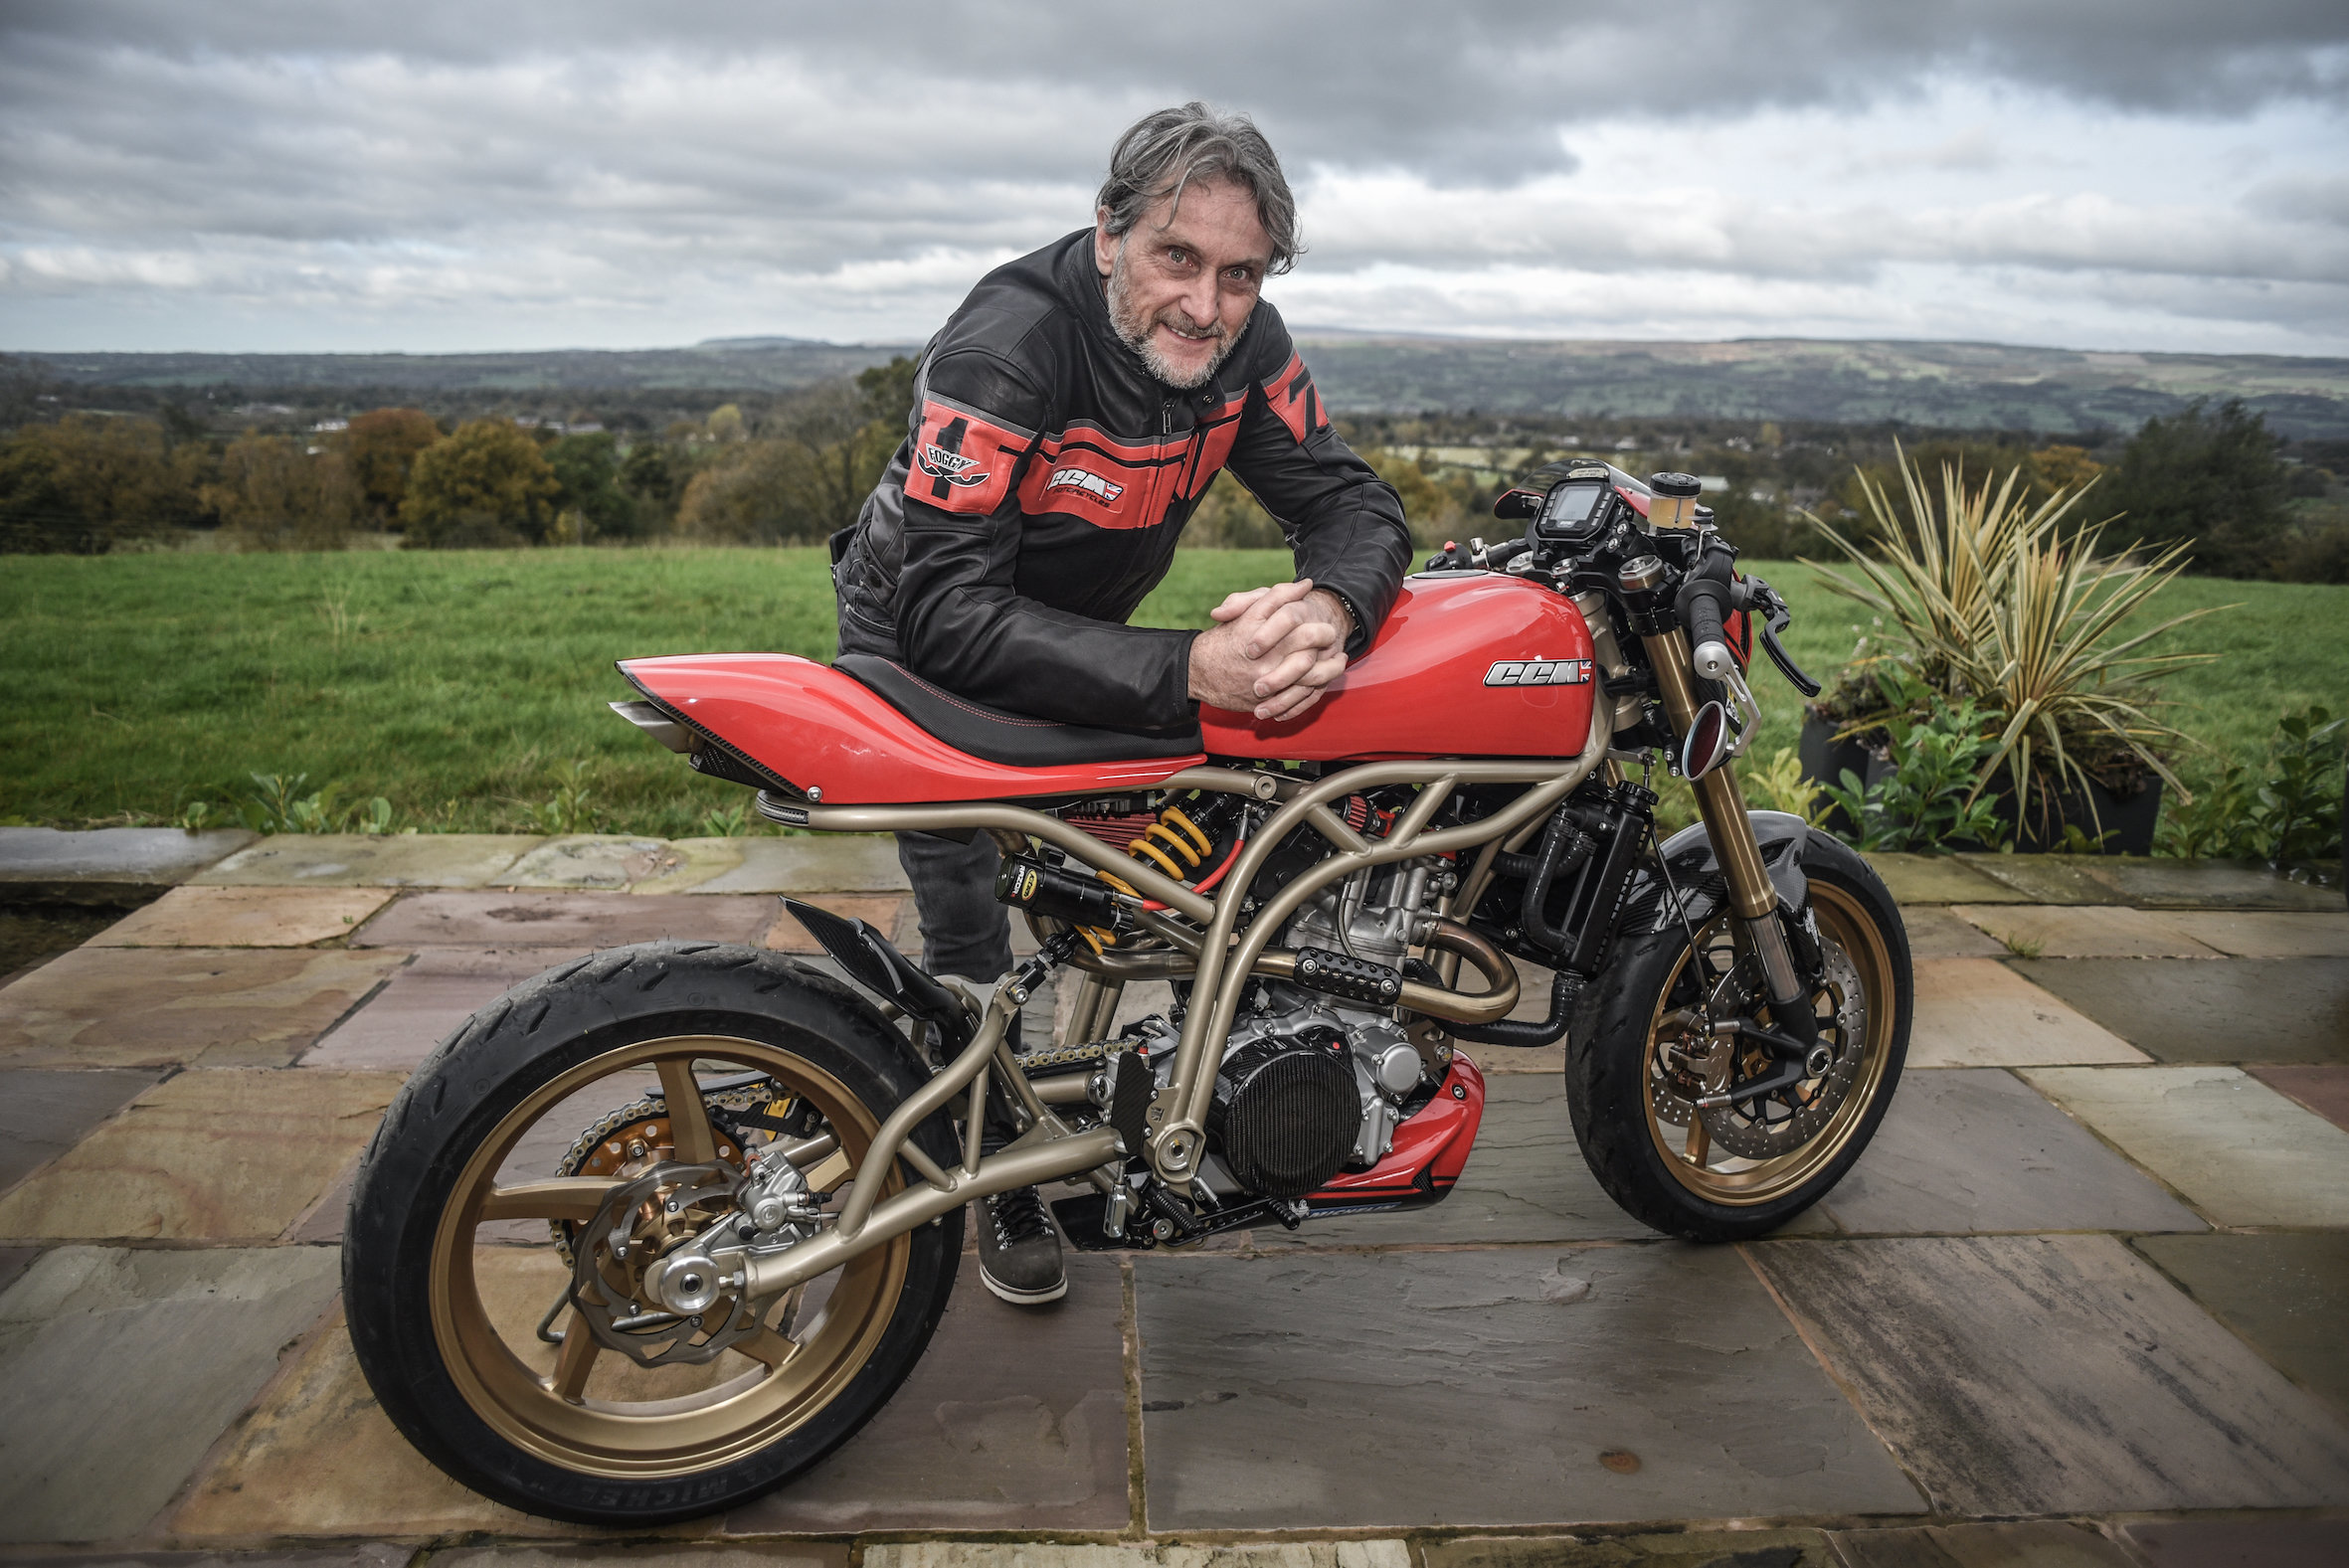 Carl Fogarty will be guest of honour at Castle Combe this year. Picture: Pete Stowe/Geoff Smith